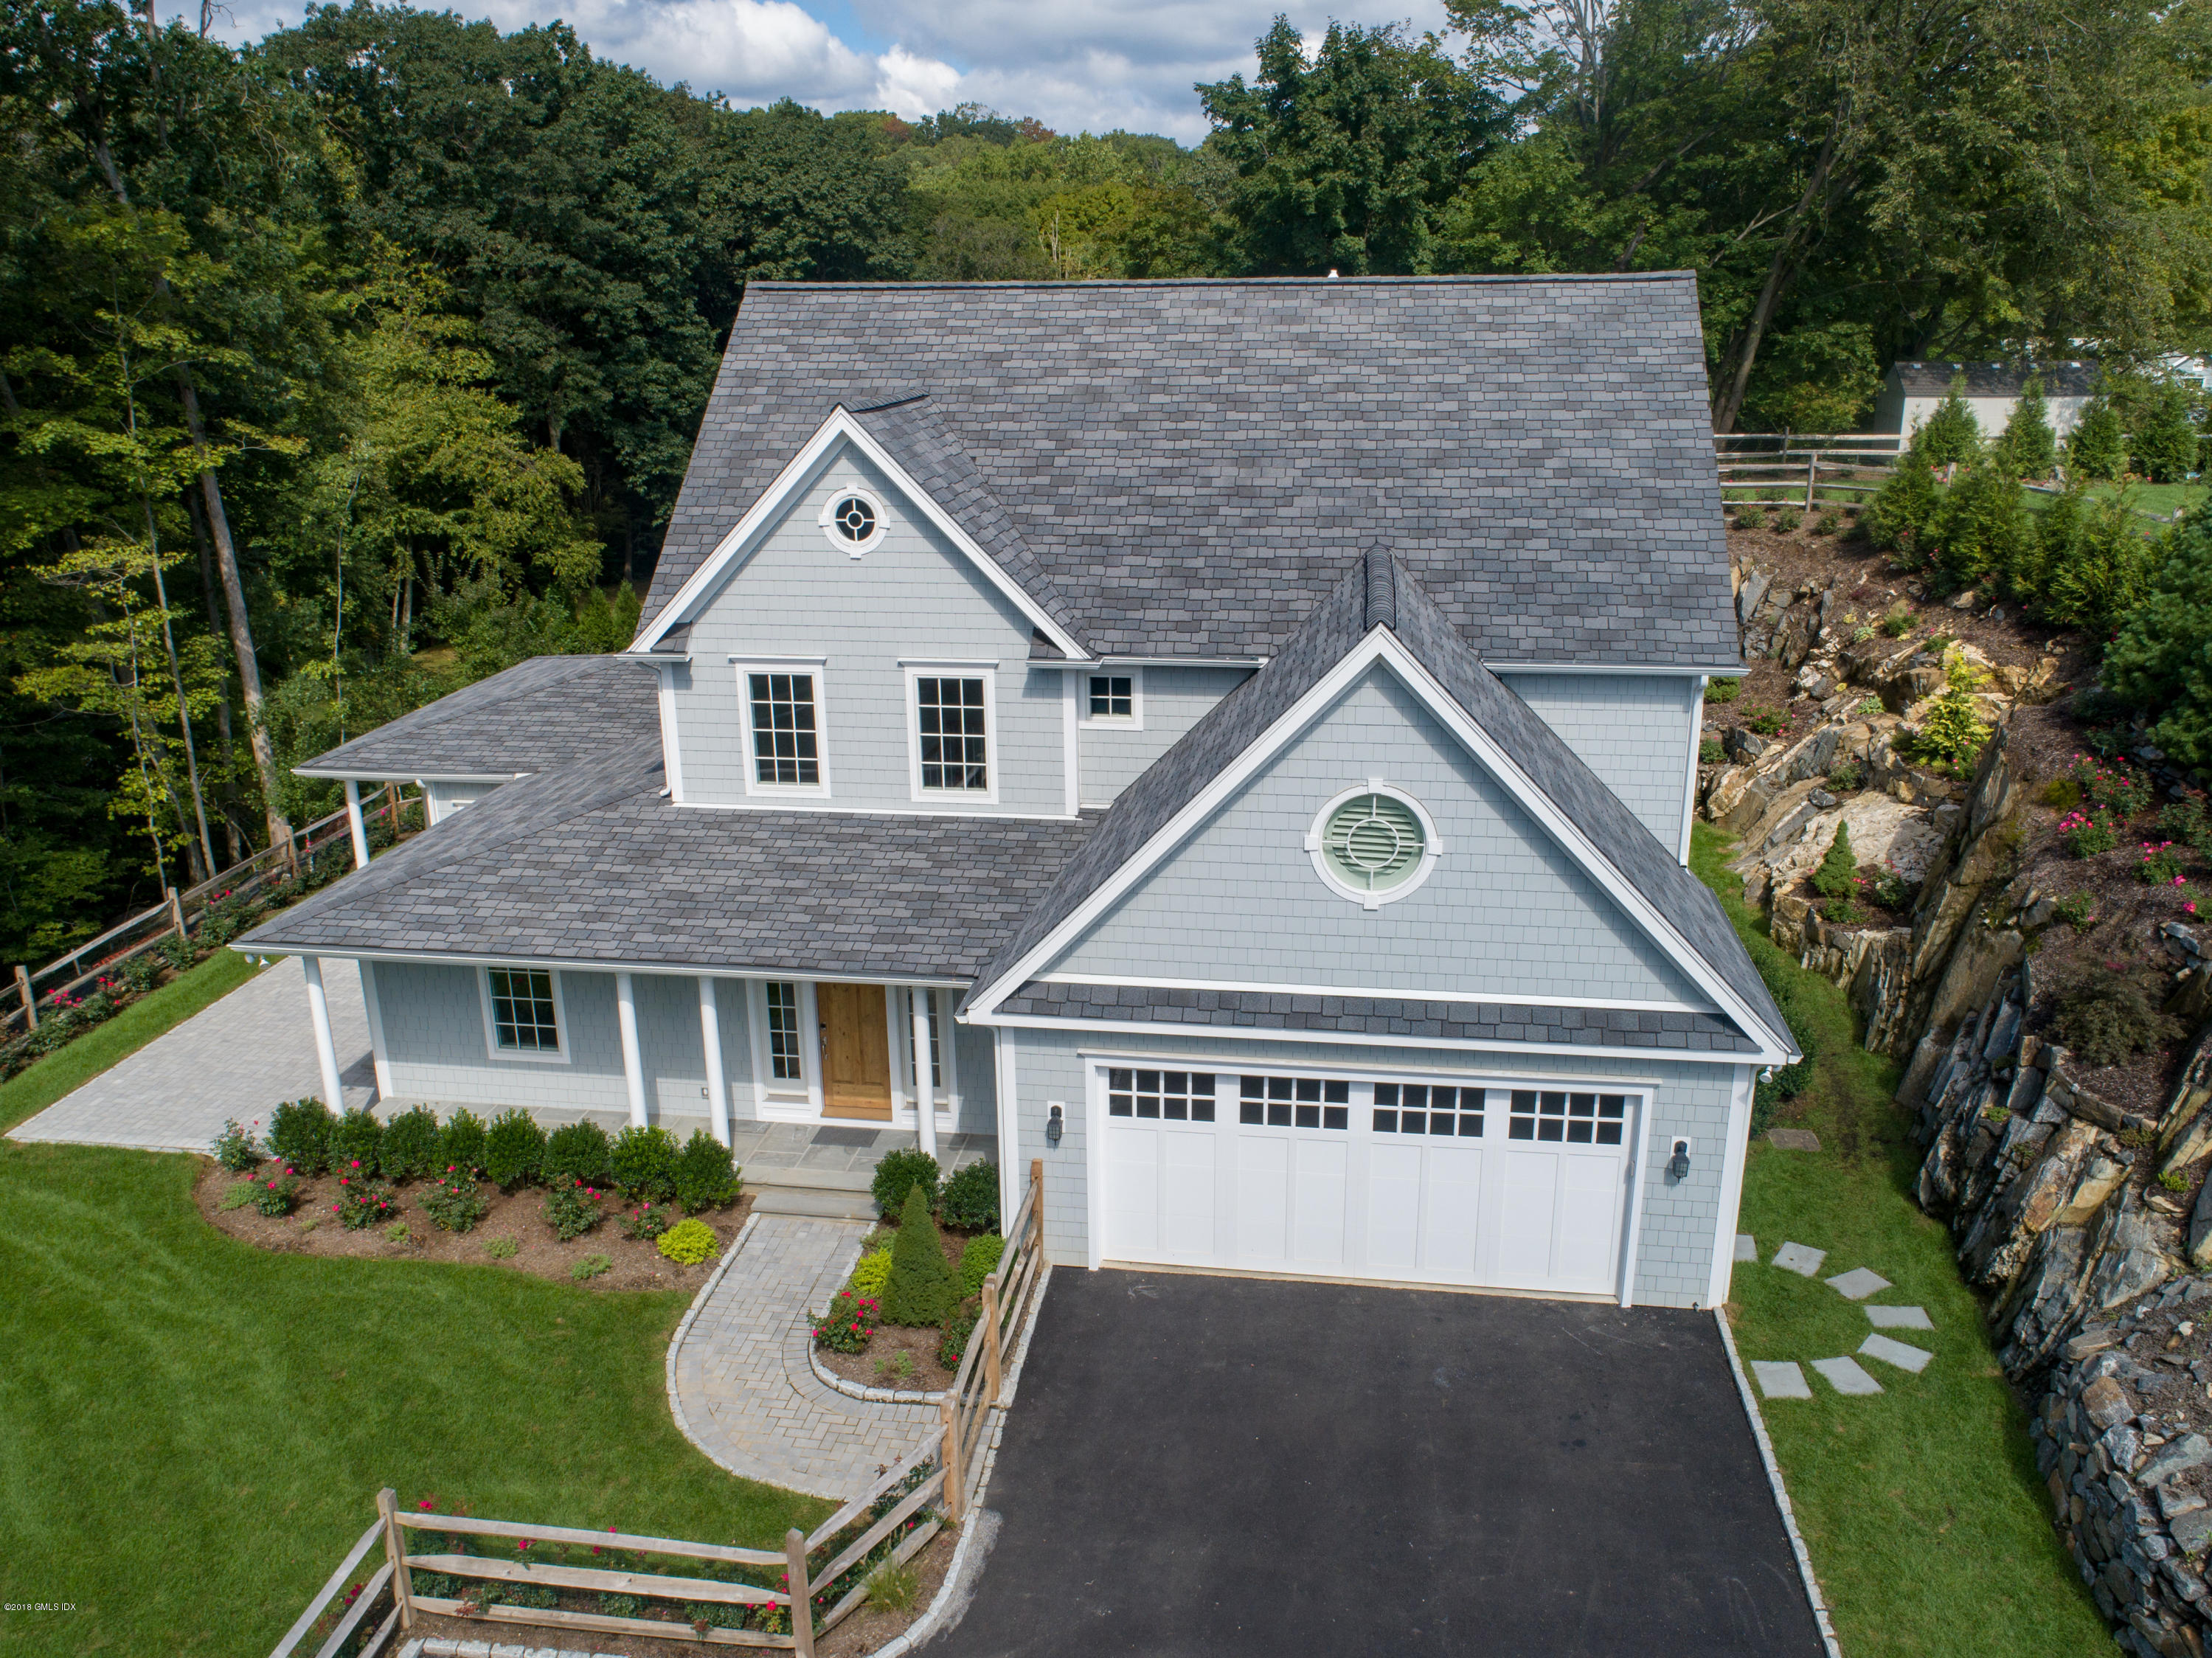 550 River Road,Cos Cob,Connecticut 06807,6 Bedrooms Bedrooms,5 BathroomsBathrooms,Single family,River,106222